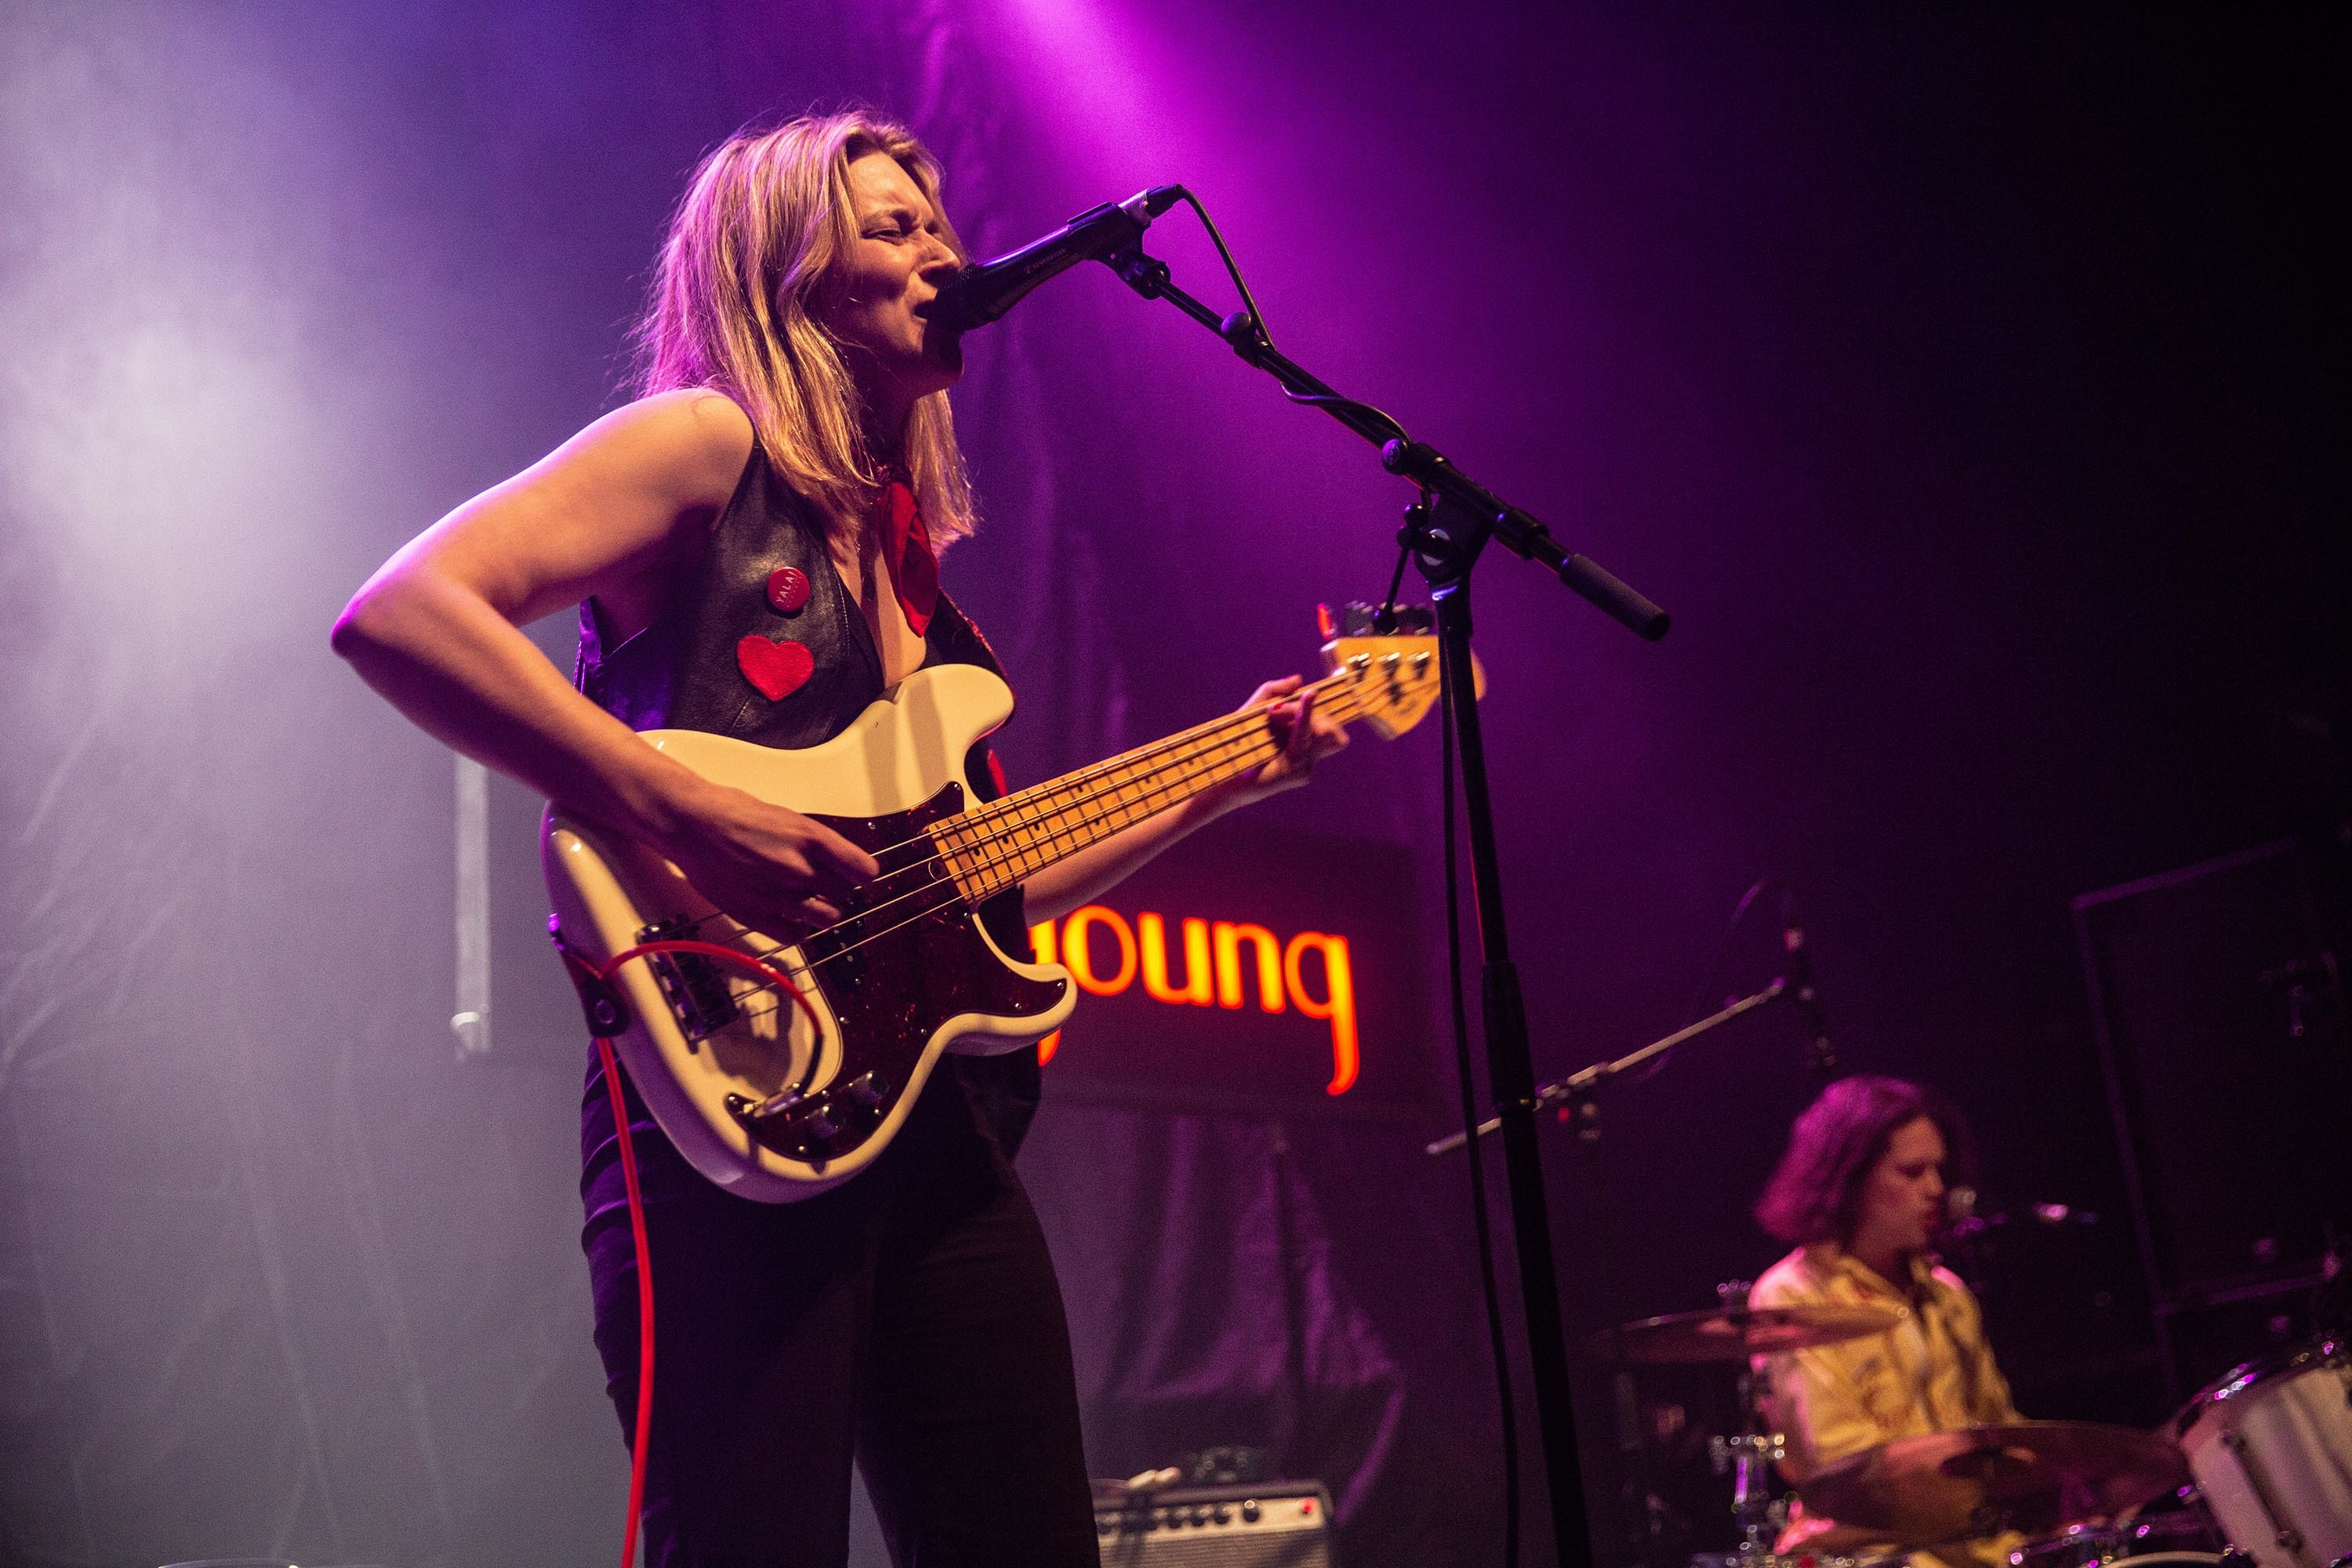 Whenyoung, Pixey and more to play CloseUp Festival